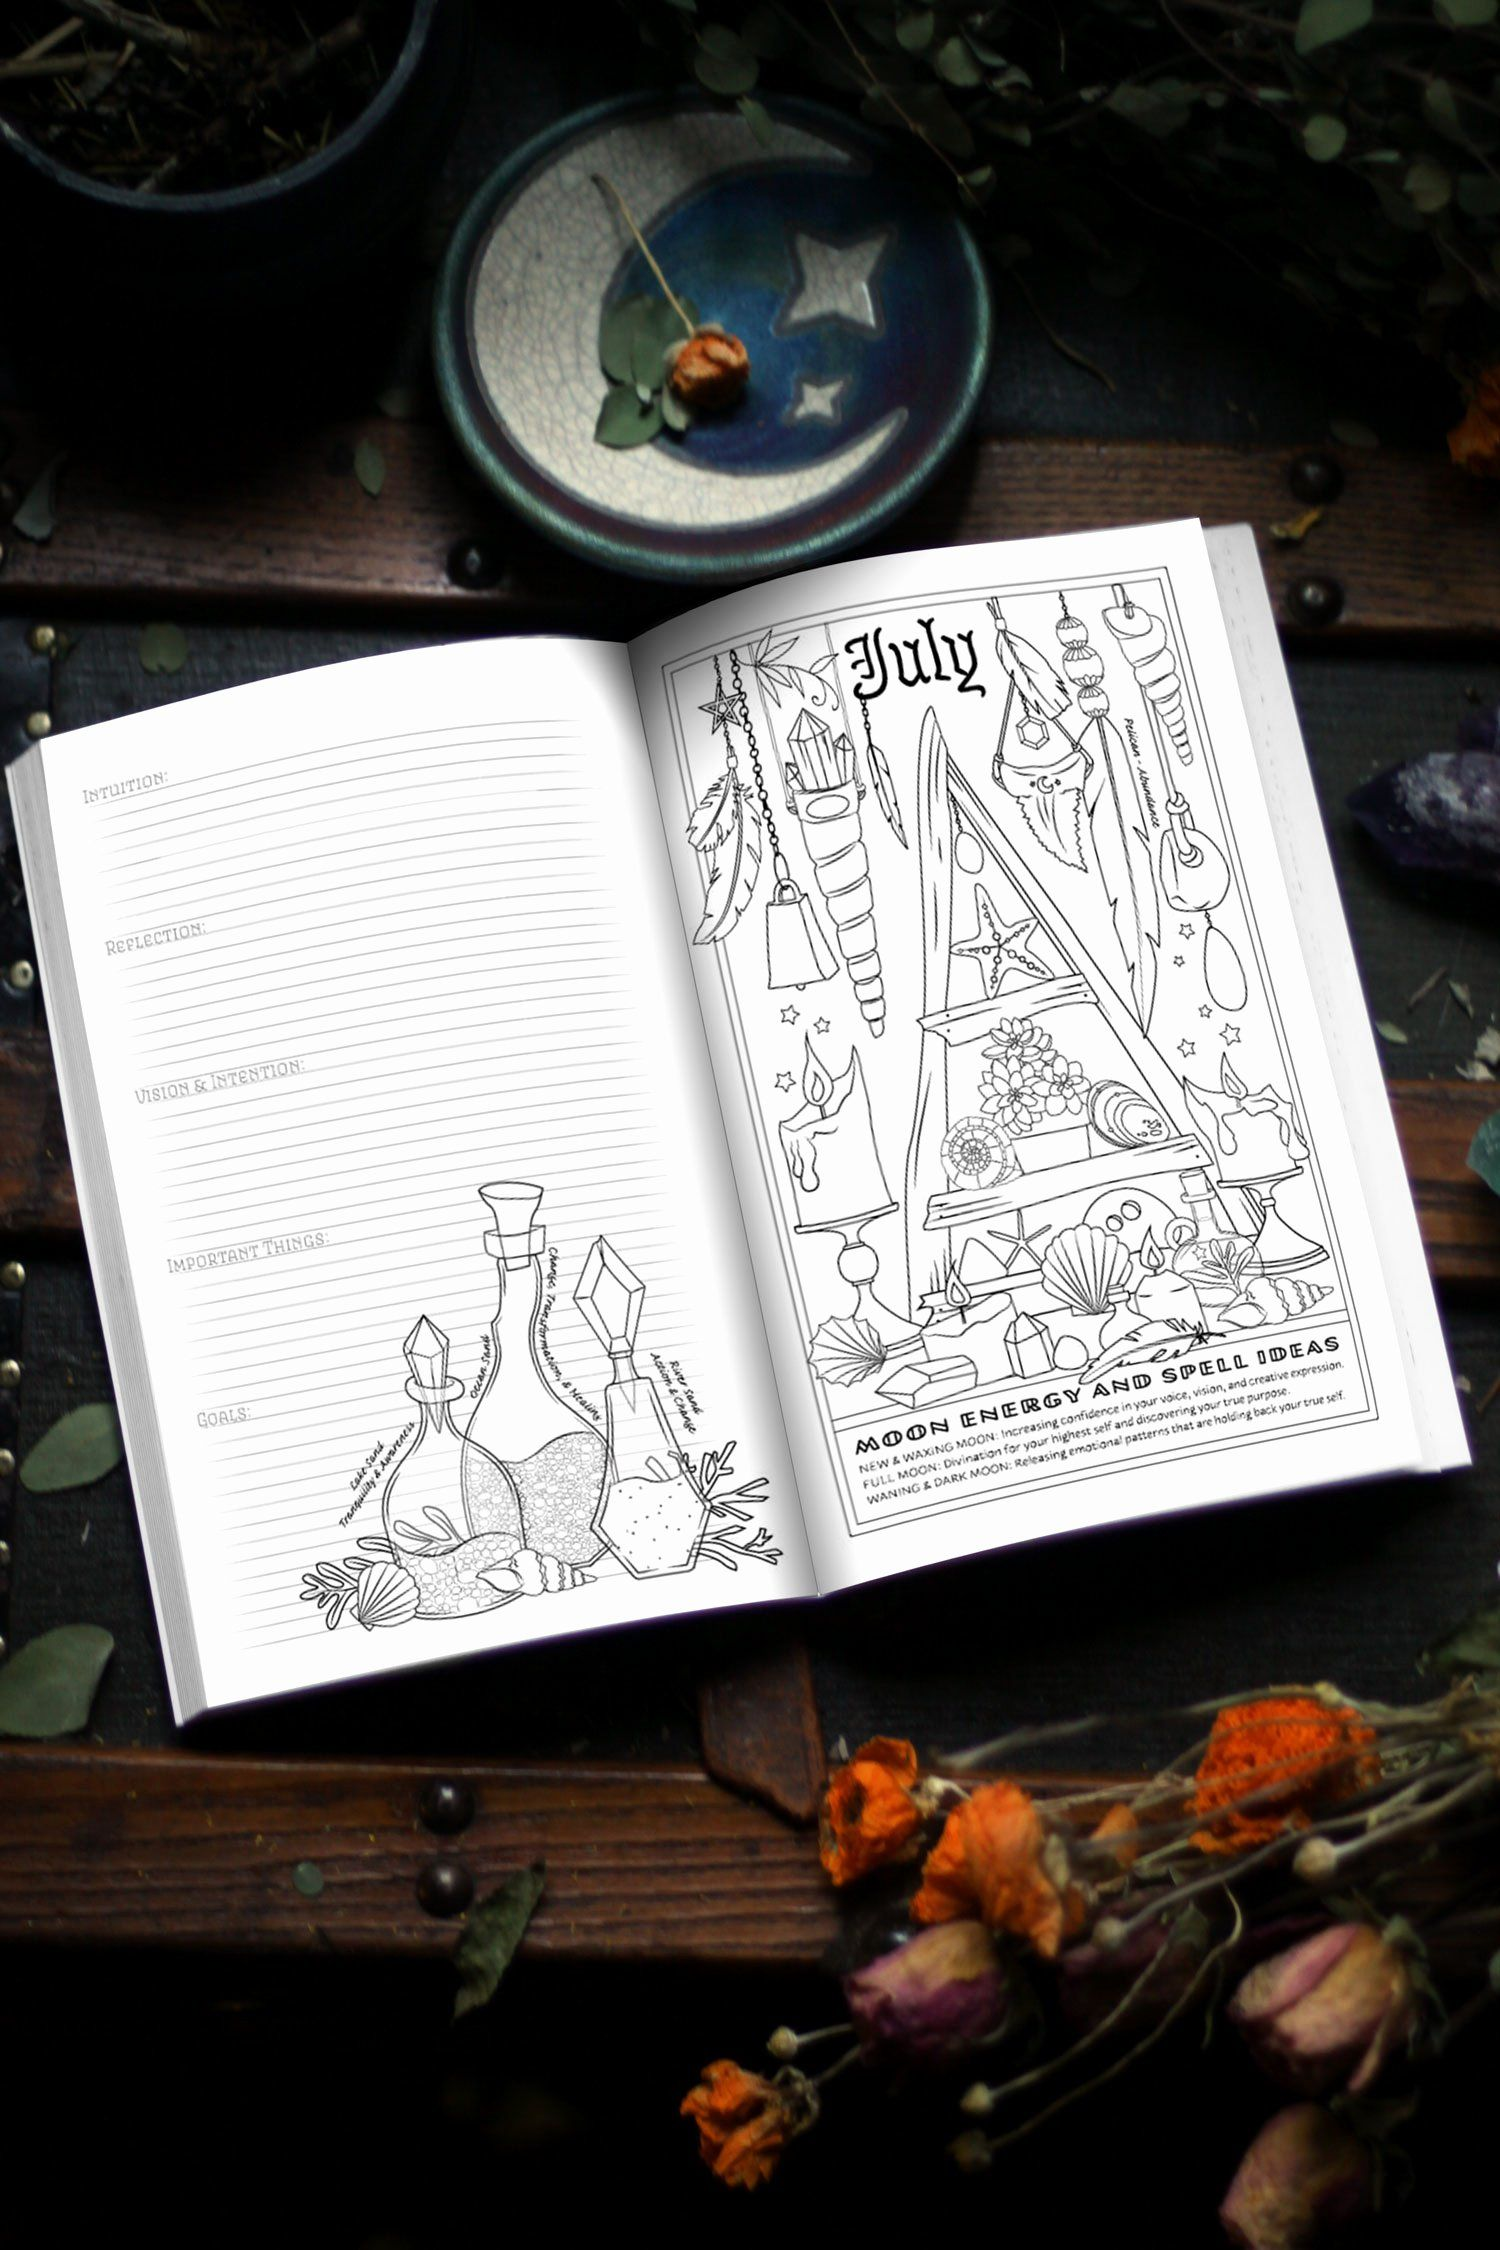 Book Of Shadows Coloring Book Inspirational Planner For A Magical 2019 Coloring Book Of Shadows Book Of Shadows Coloring Books Coloring Book Pages